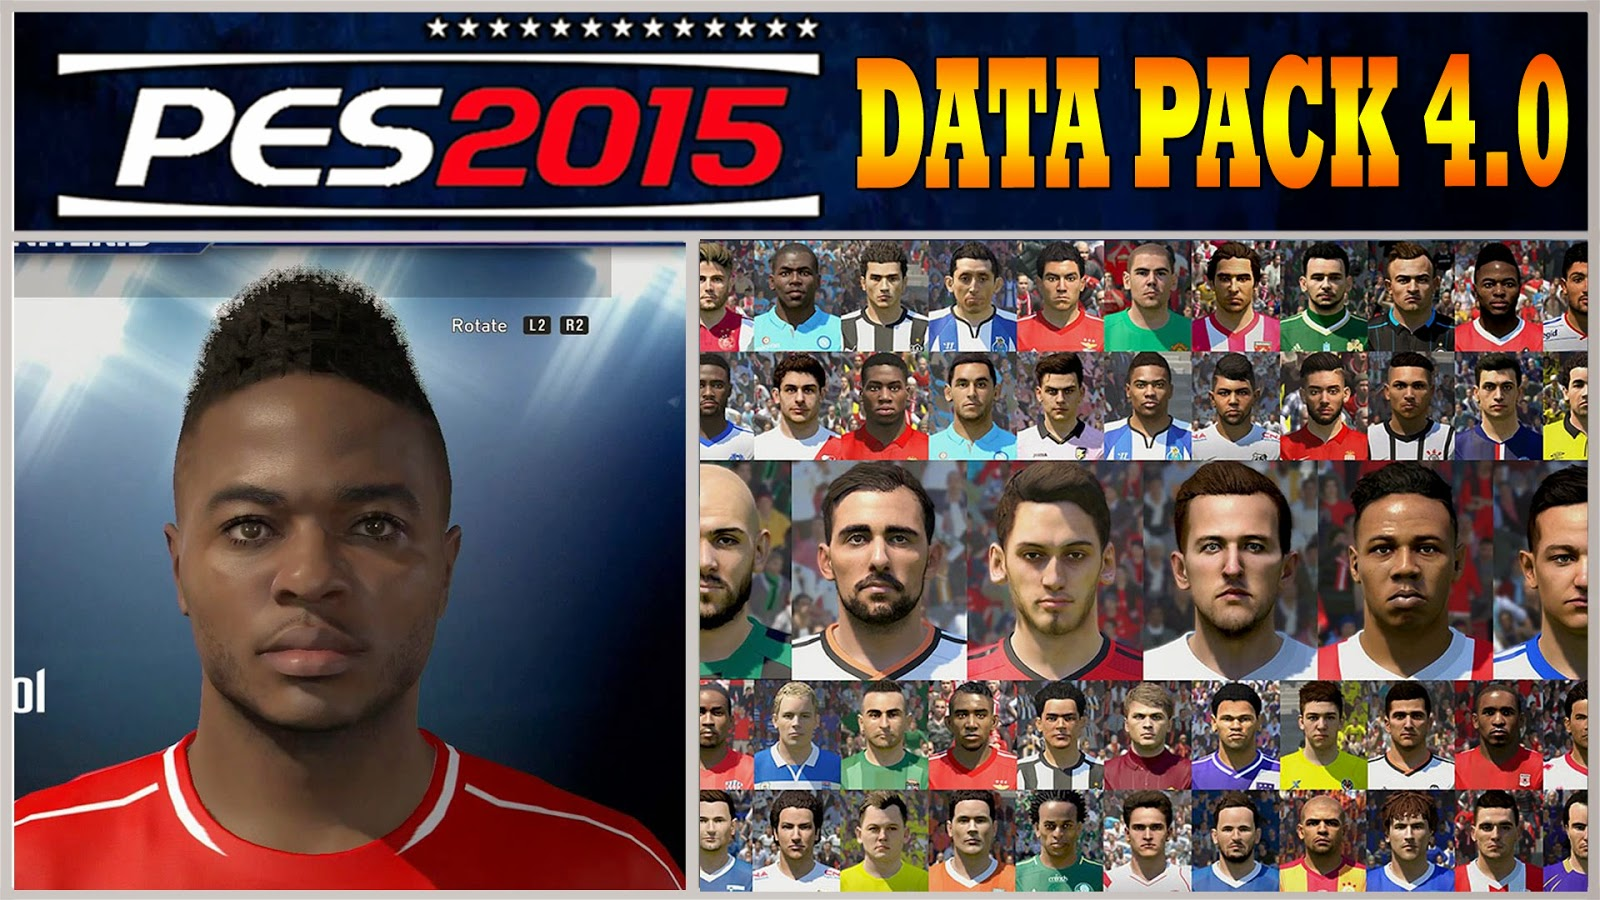 Update PES 2015 Data Pack 4.0